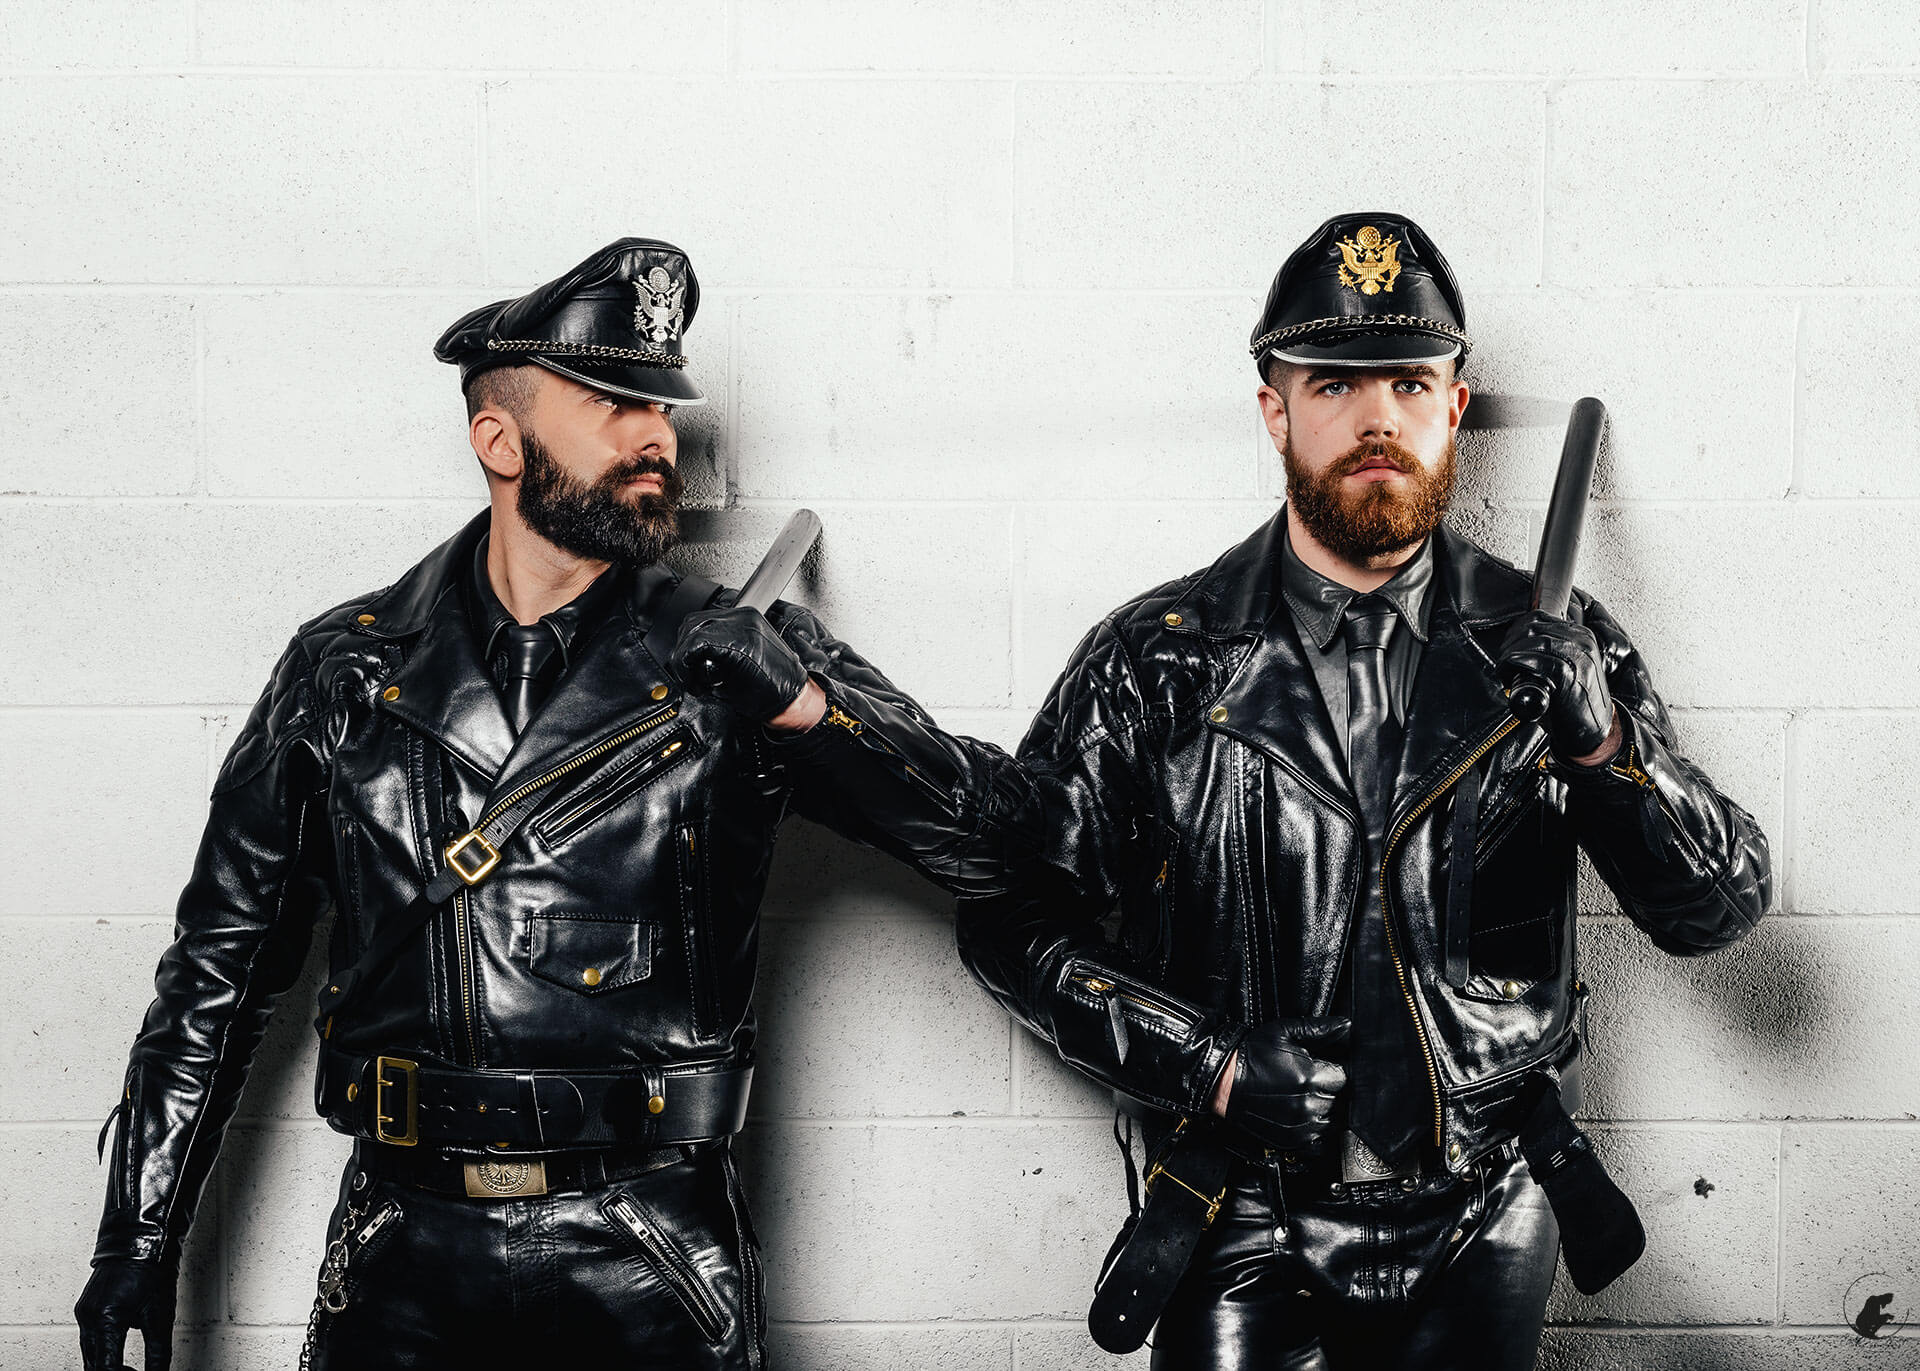 Police leather